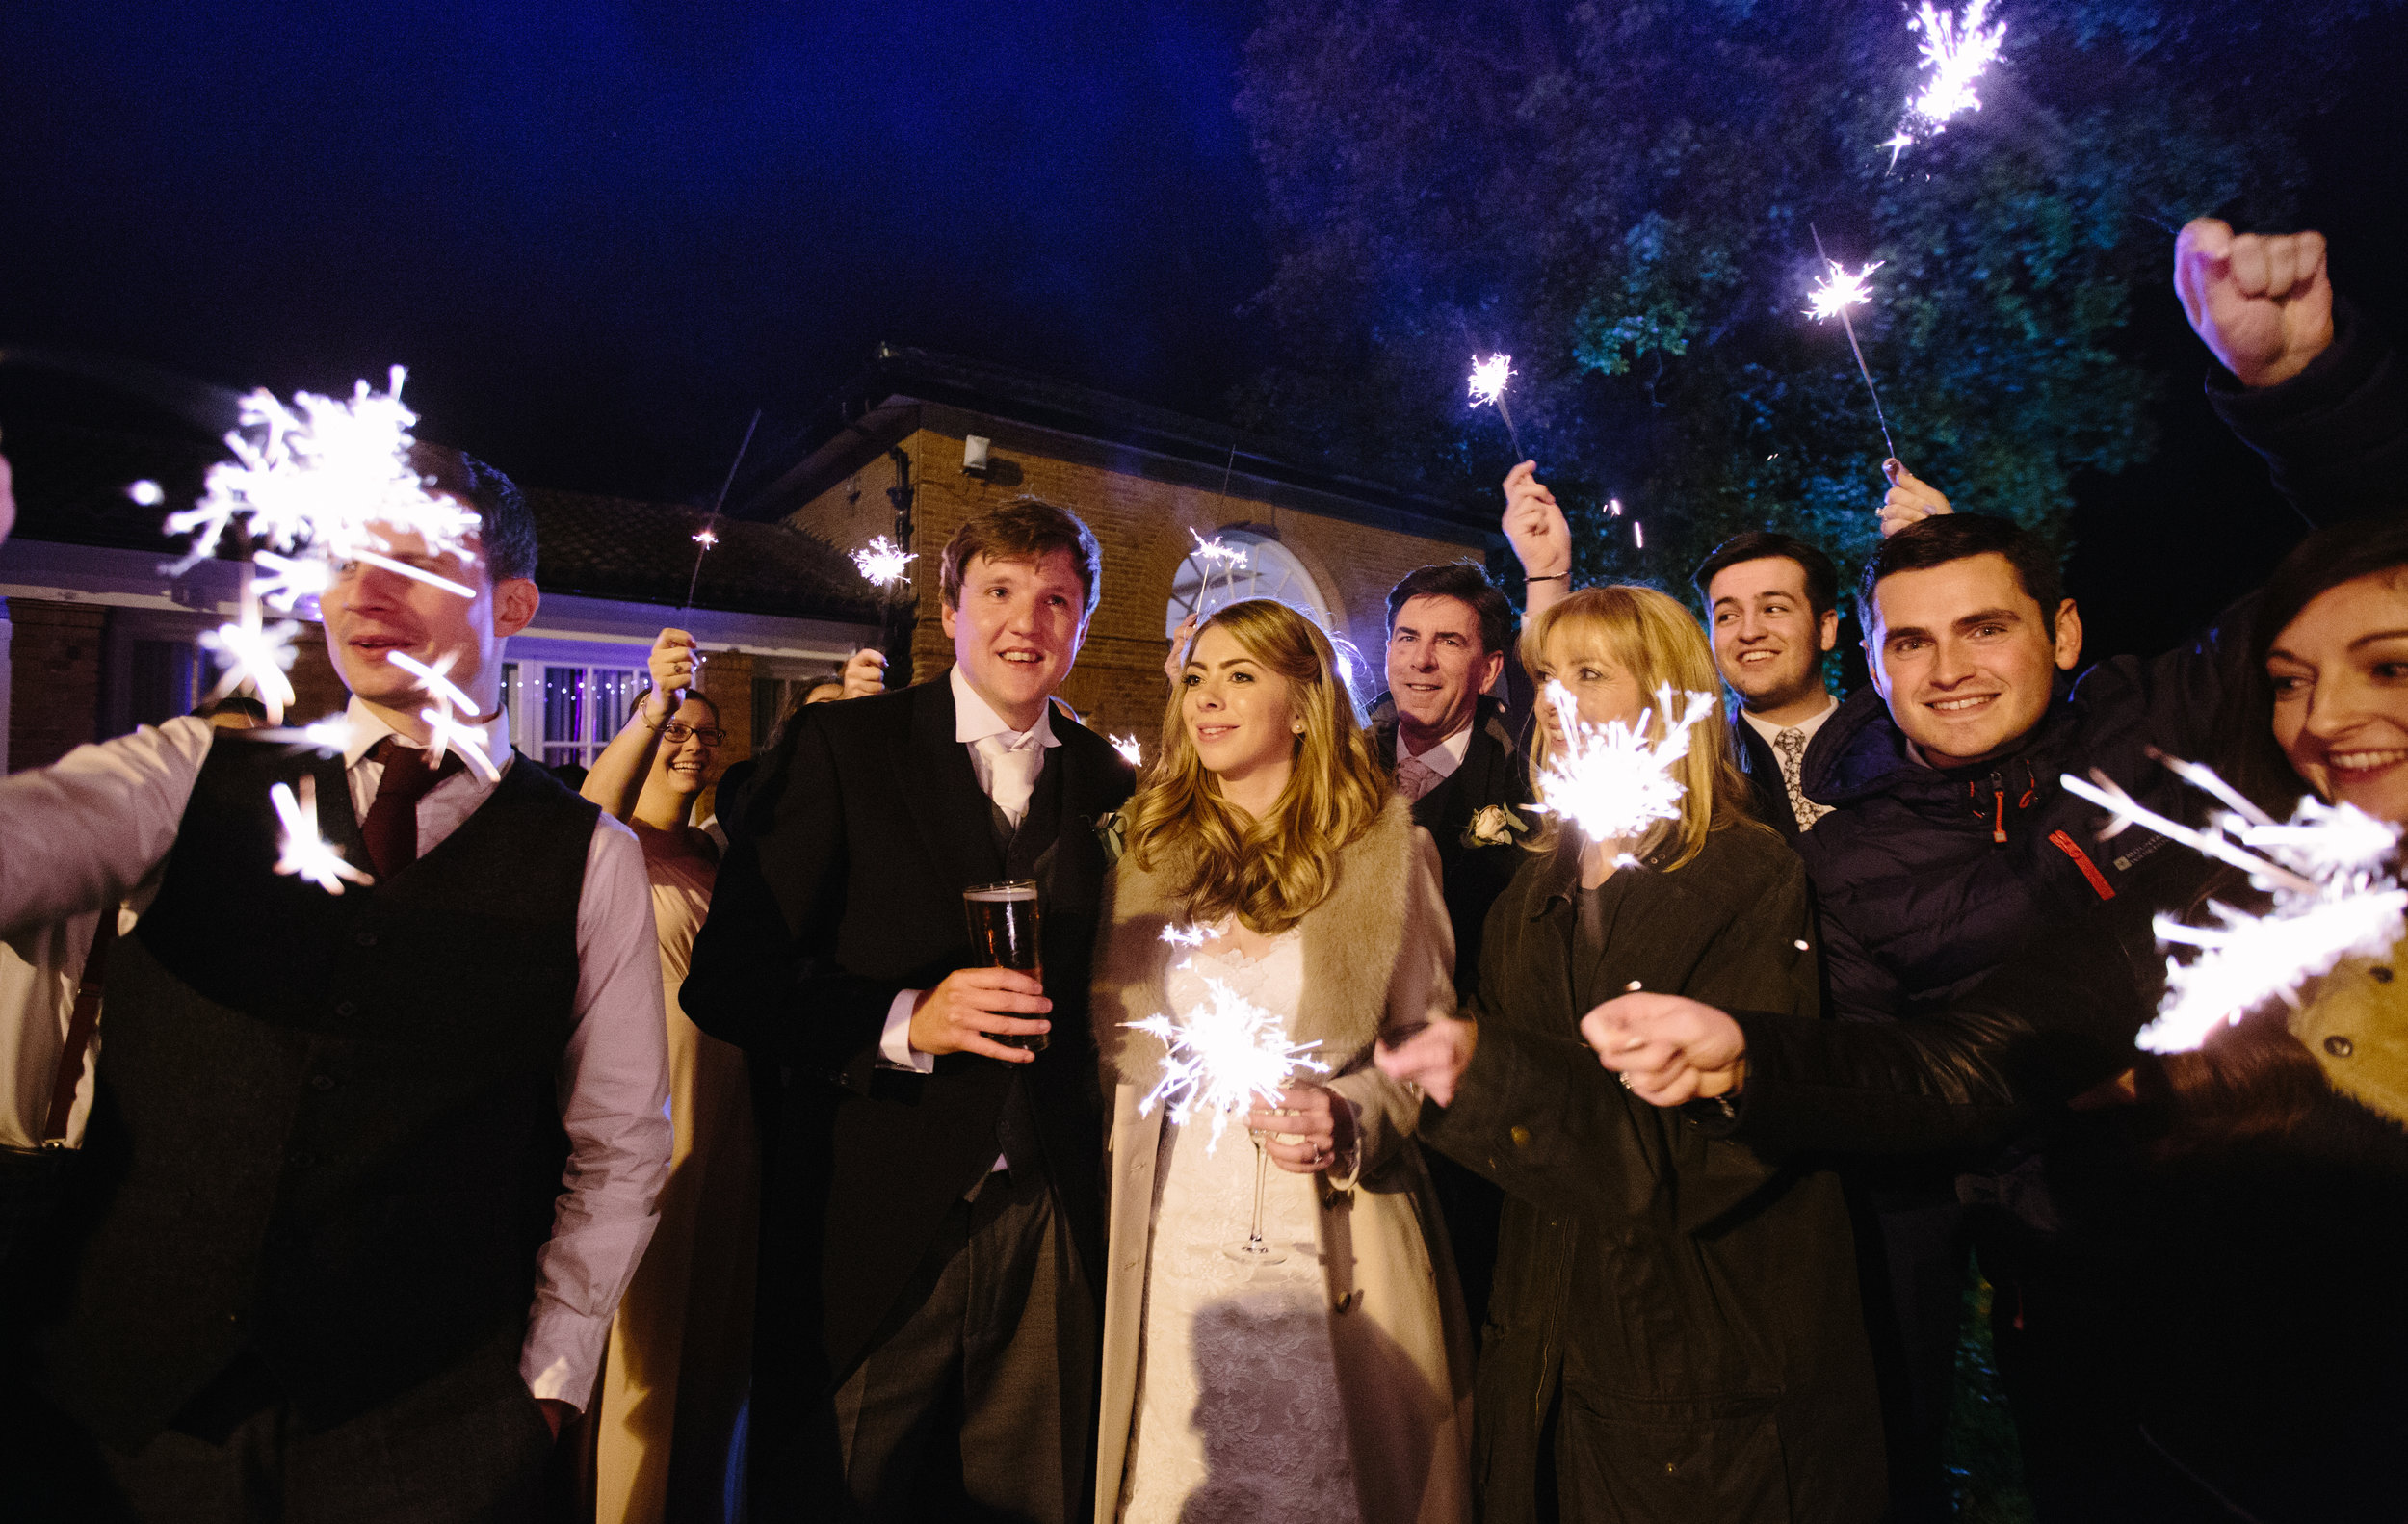 surrey-ascot-royal-berkshire-hotel-autumn-wedding-sparklers-fireworks-68